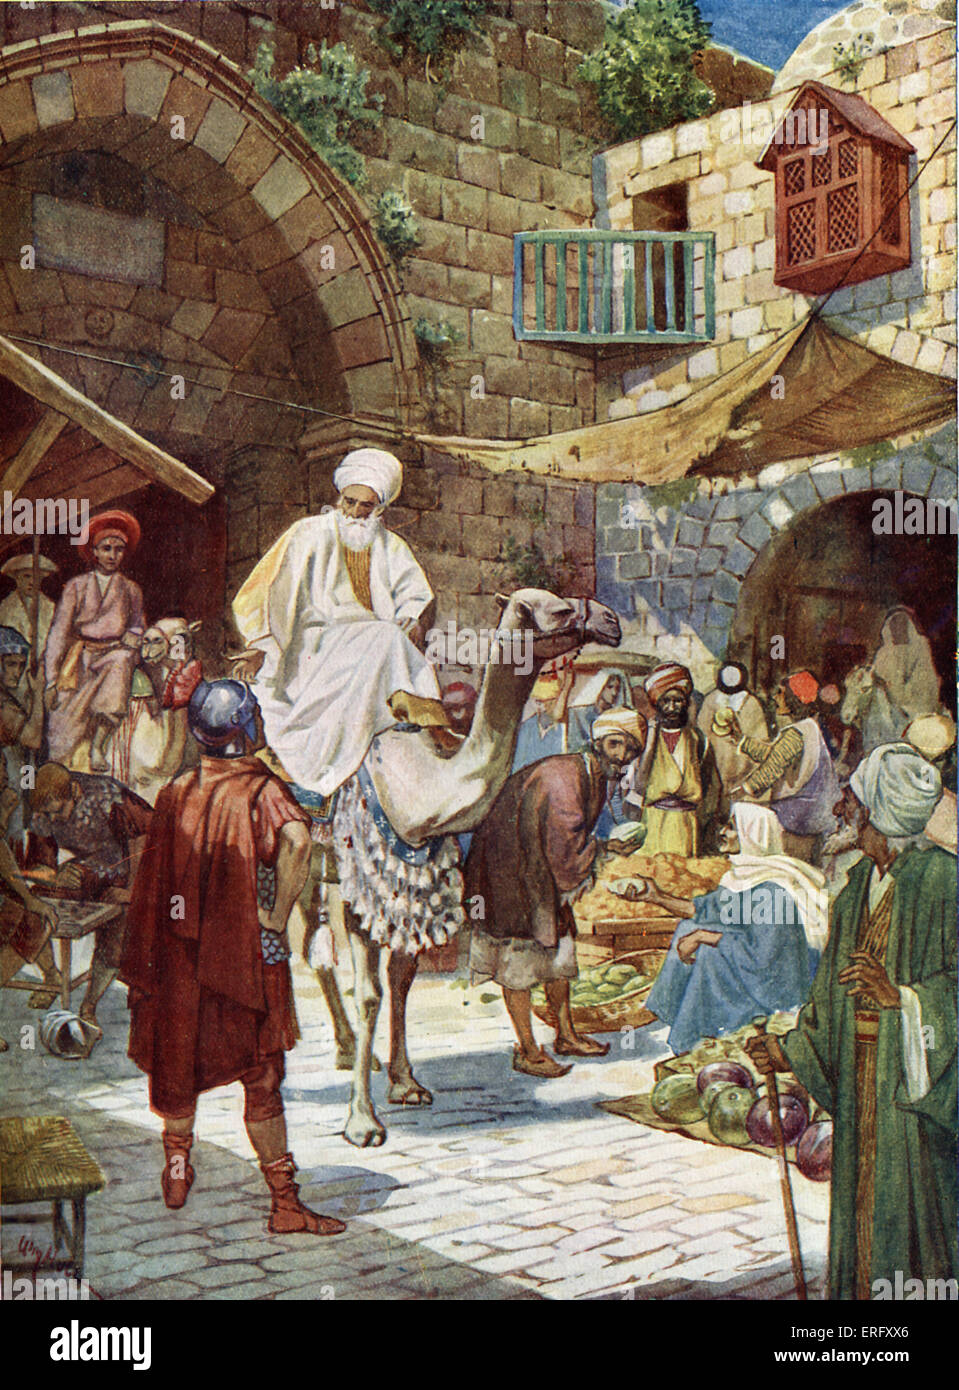 The Wise Men arrive at Bethlehem. 'Behold, wise men from the east came to Jerusalem, saying, Where is he that - Stock Image